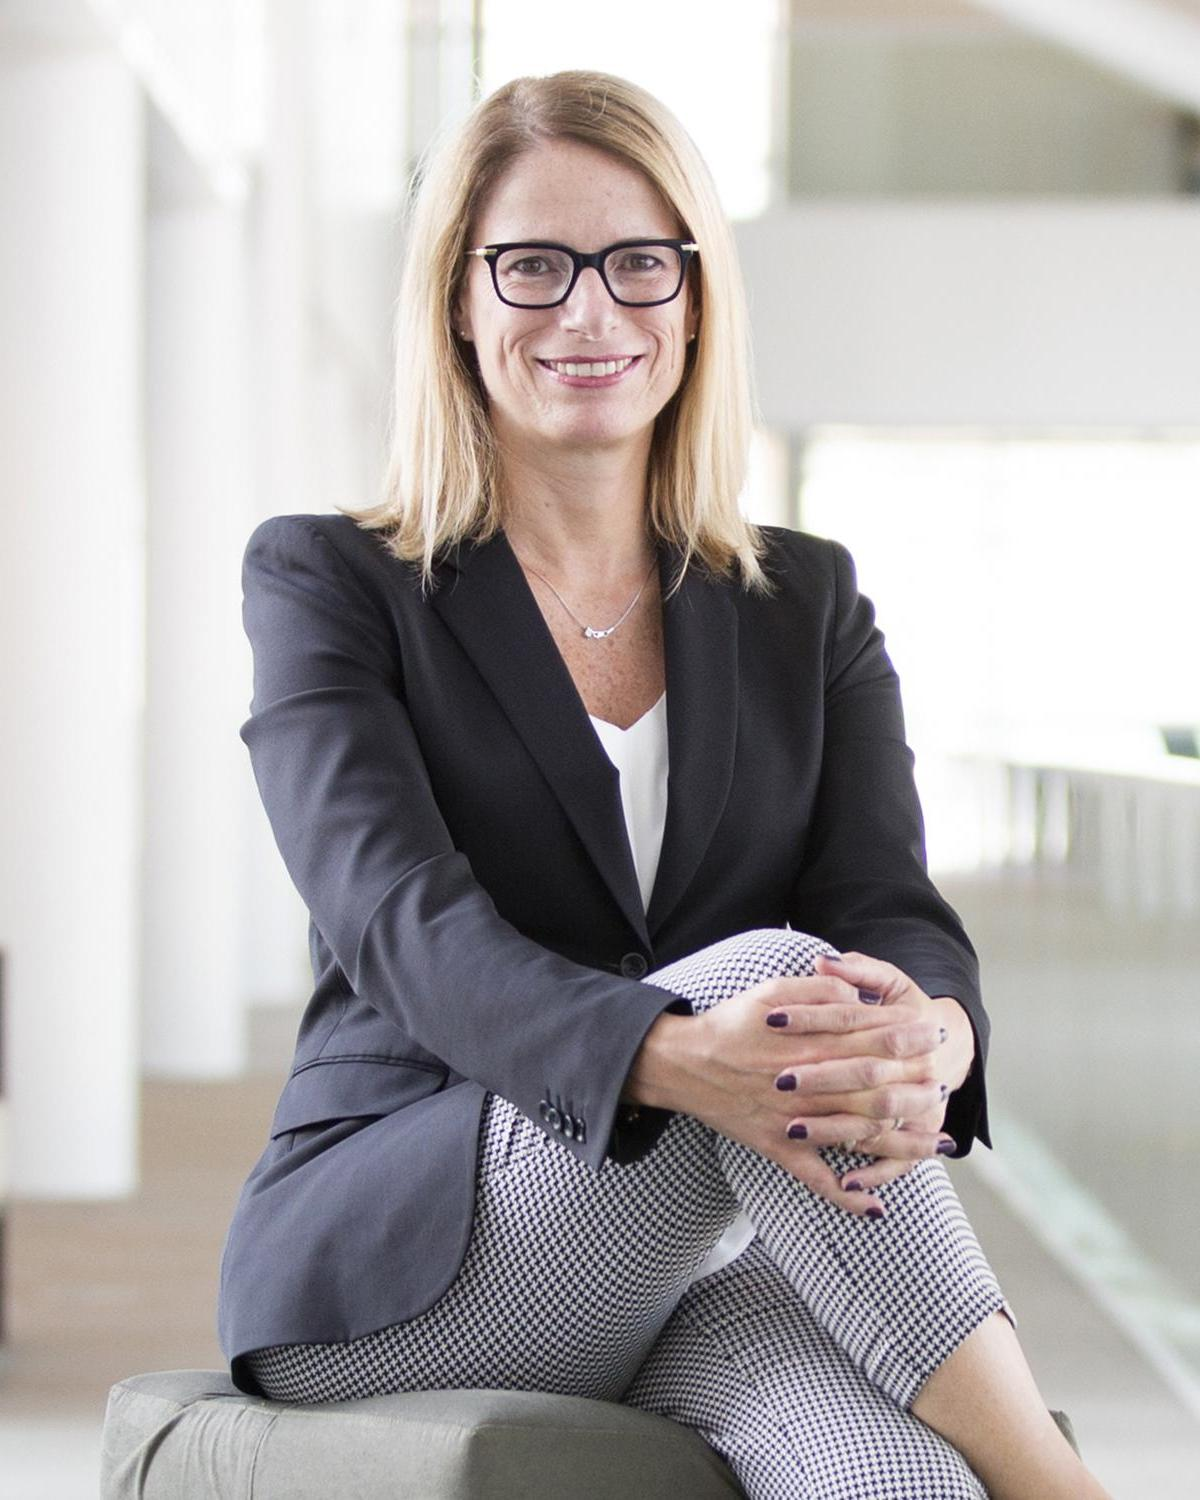 Rita-Rose Gagné to succeed Atkins as Hammerson CEO - Real Asset Insight